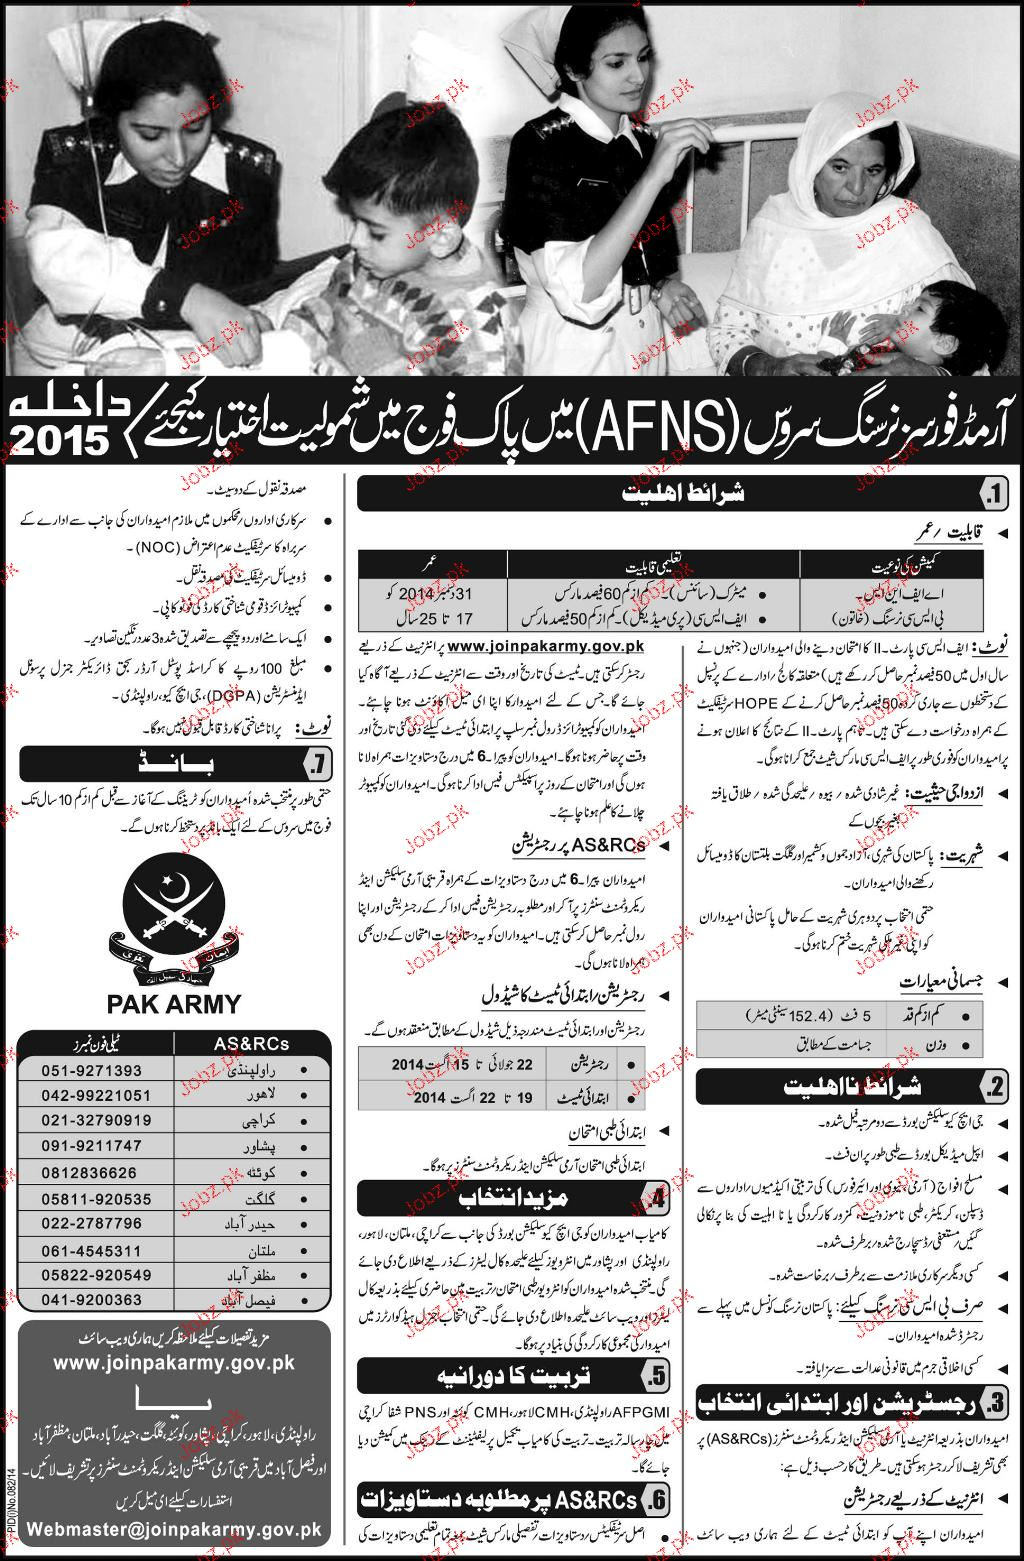 Armed Forces Nursing Staff Job in Pakistan Army